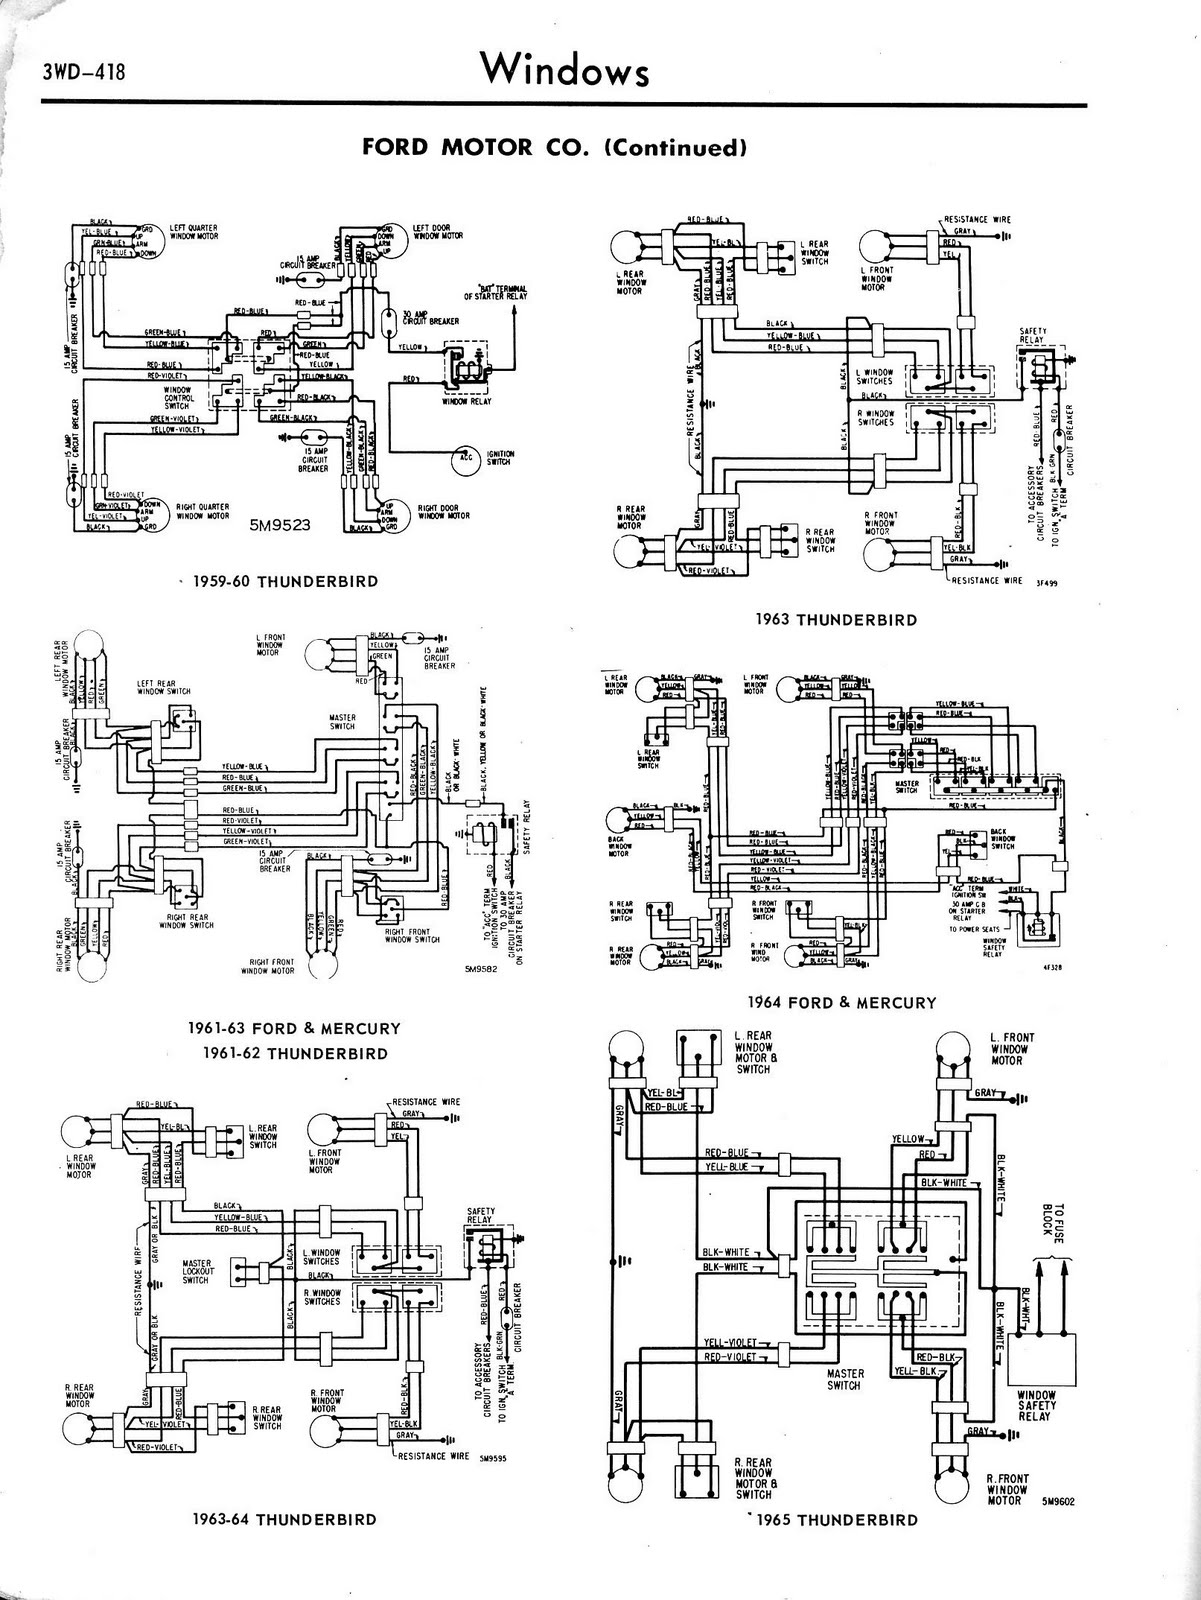 1965+Ford+Thunderbird+Window+Controls+Diagram wiring diagram for 1972 ford f100 the wiring diagram Solenoid Switch Wiring Diagram at beritabola.co